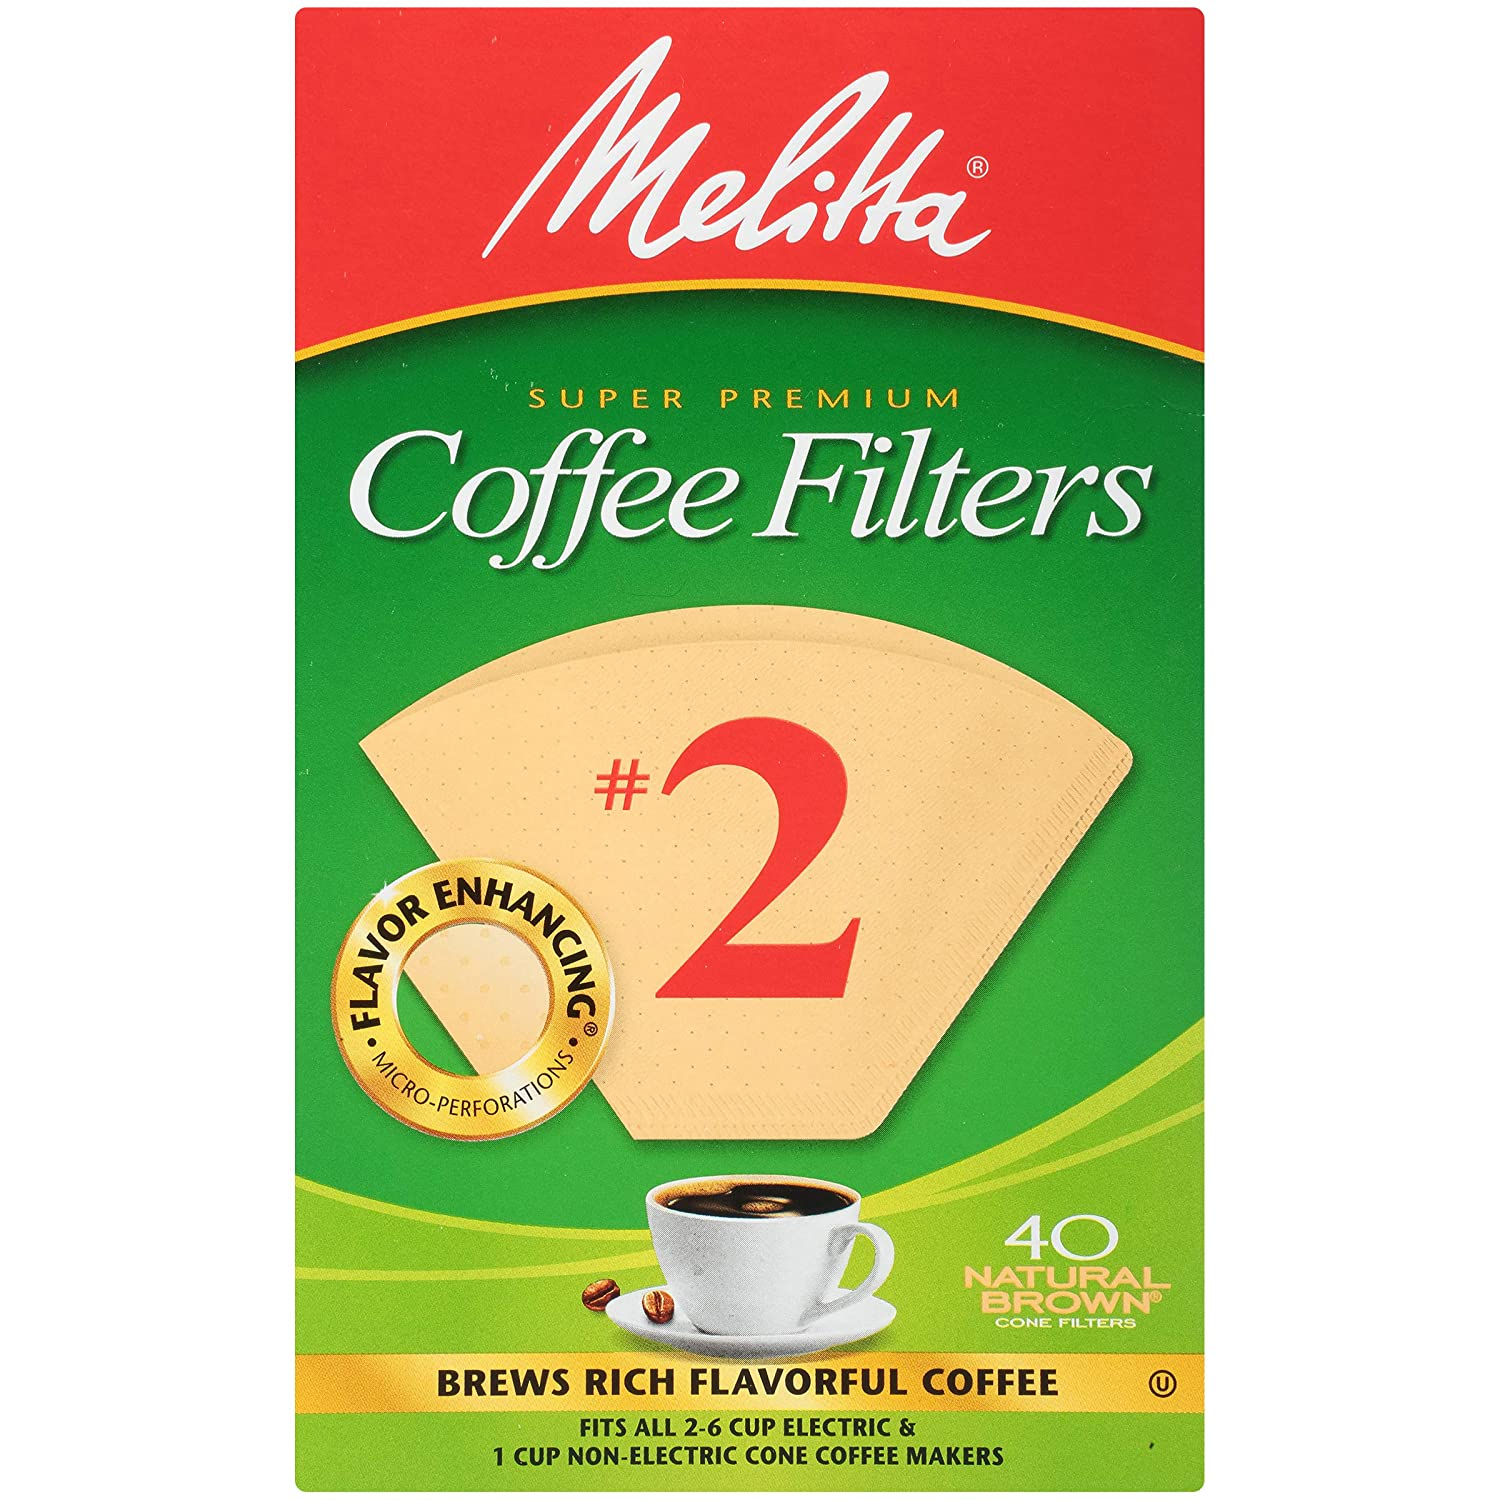 Melitta #2 Super Premium Cone Coffee Filters, Natural Brown, 40 Count (Pack of 12)